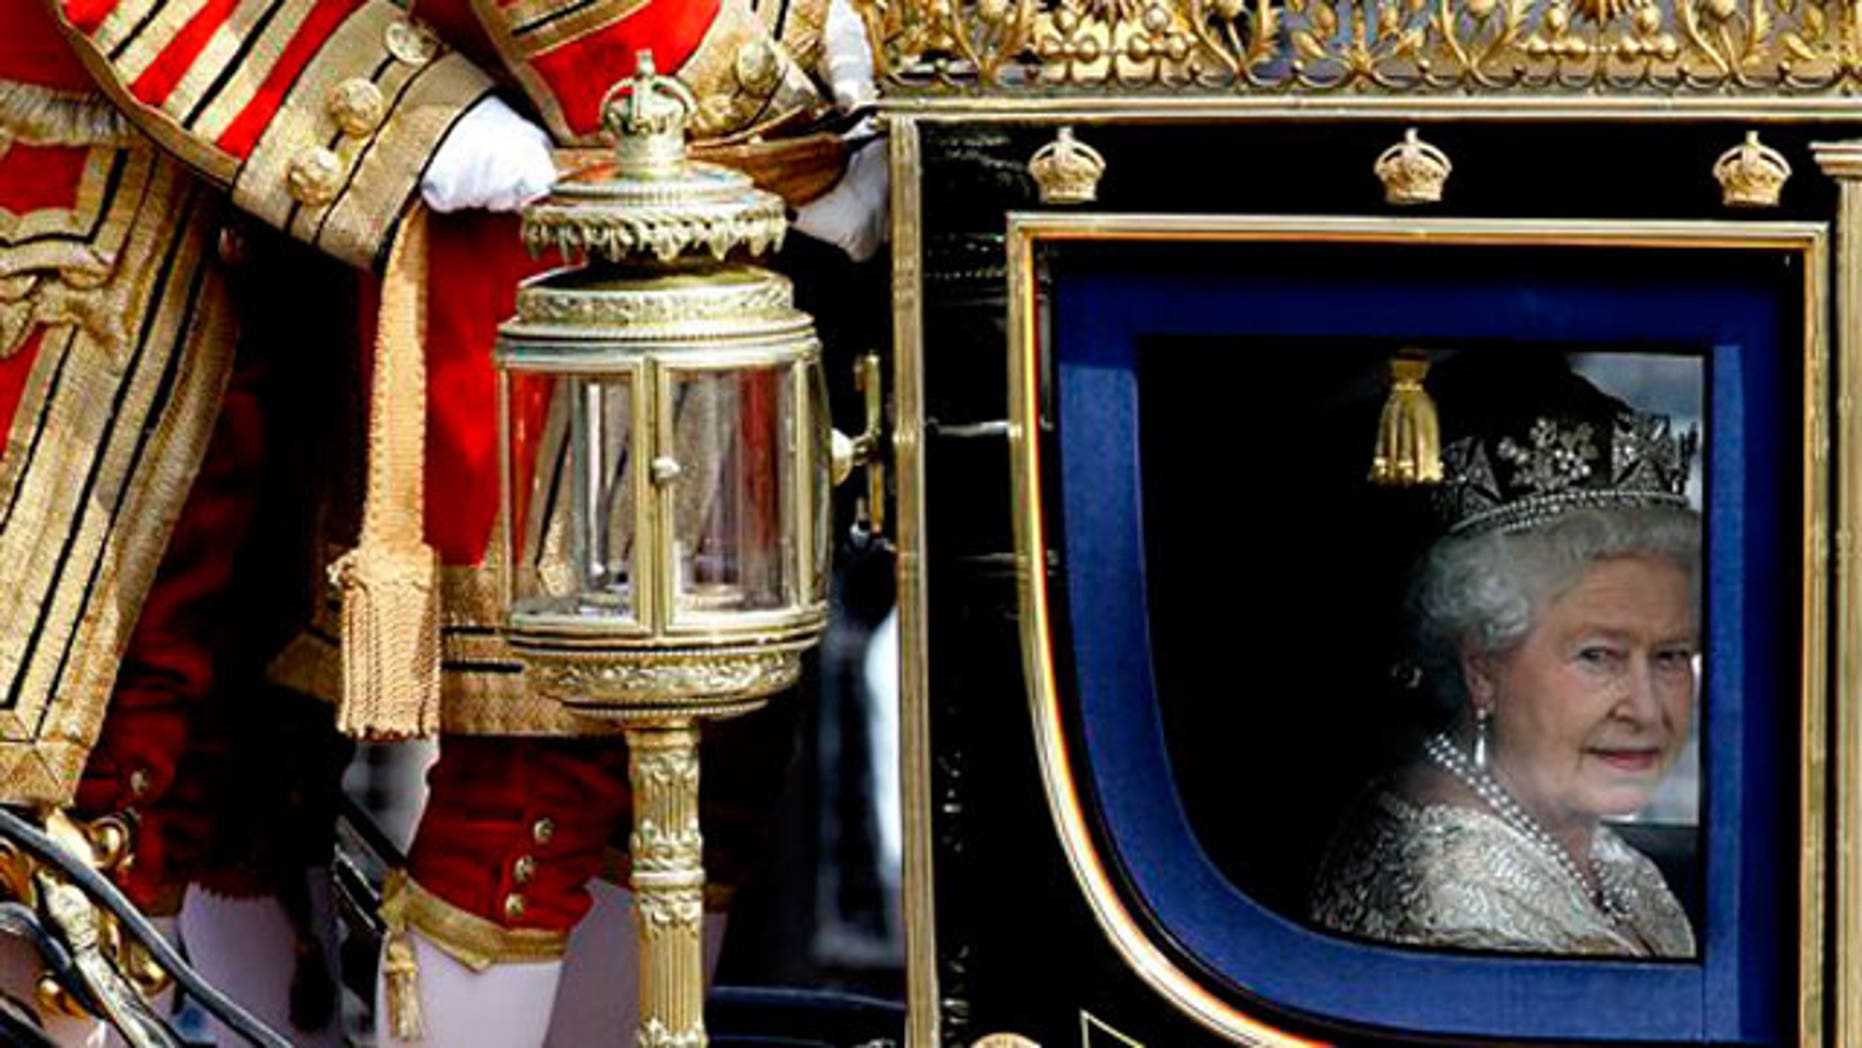 May 25: Britain's Queen Elizabeth II travels in a carriage to the Houses of Parliament in London for the State Opening of parliament